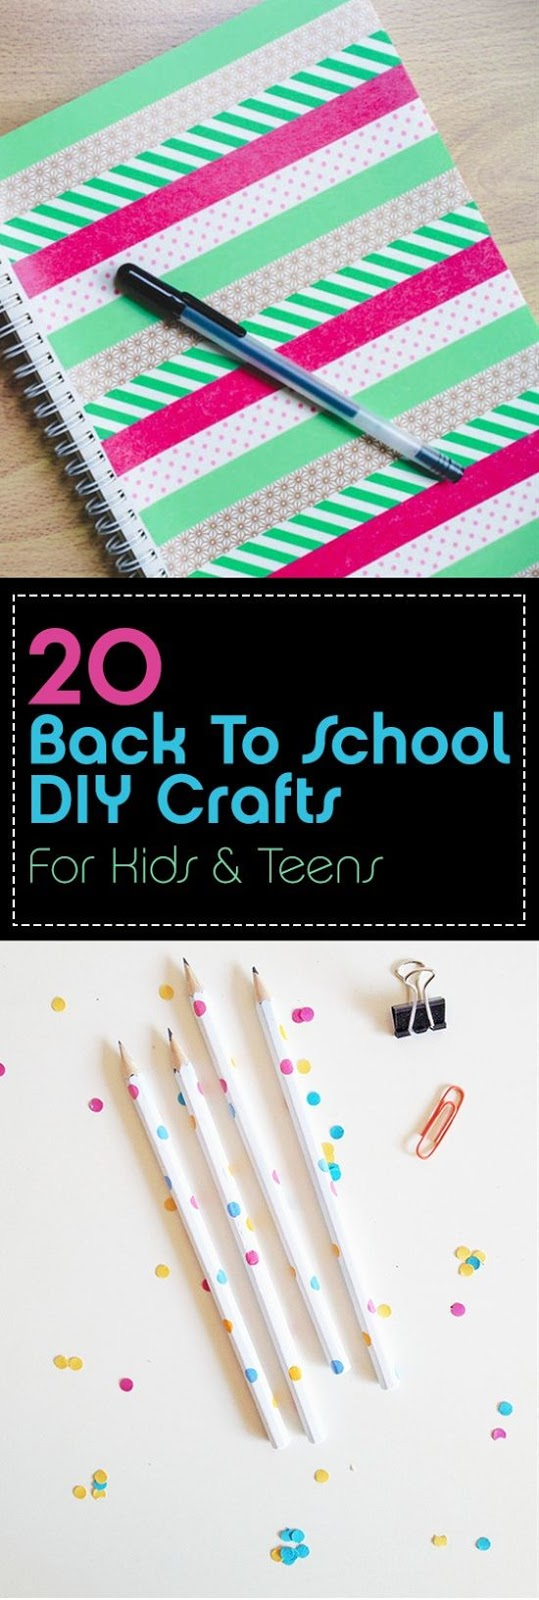 http://postris.com/list/80/20-back-to-school-diy-crafts-for-kids---teens/